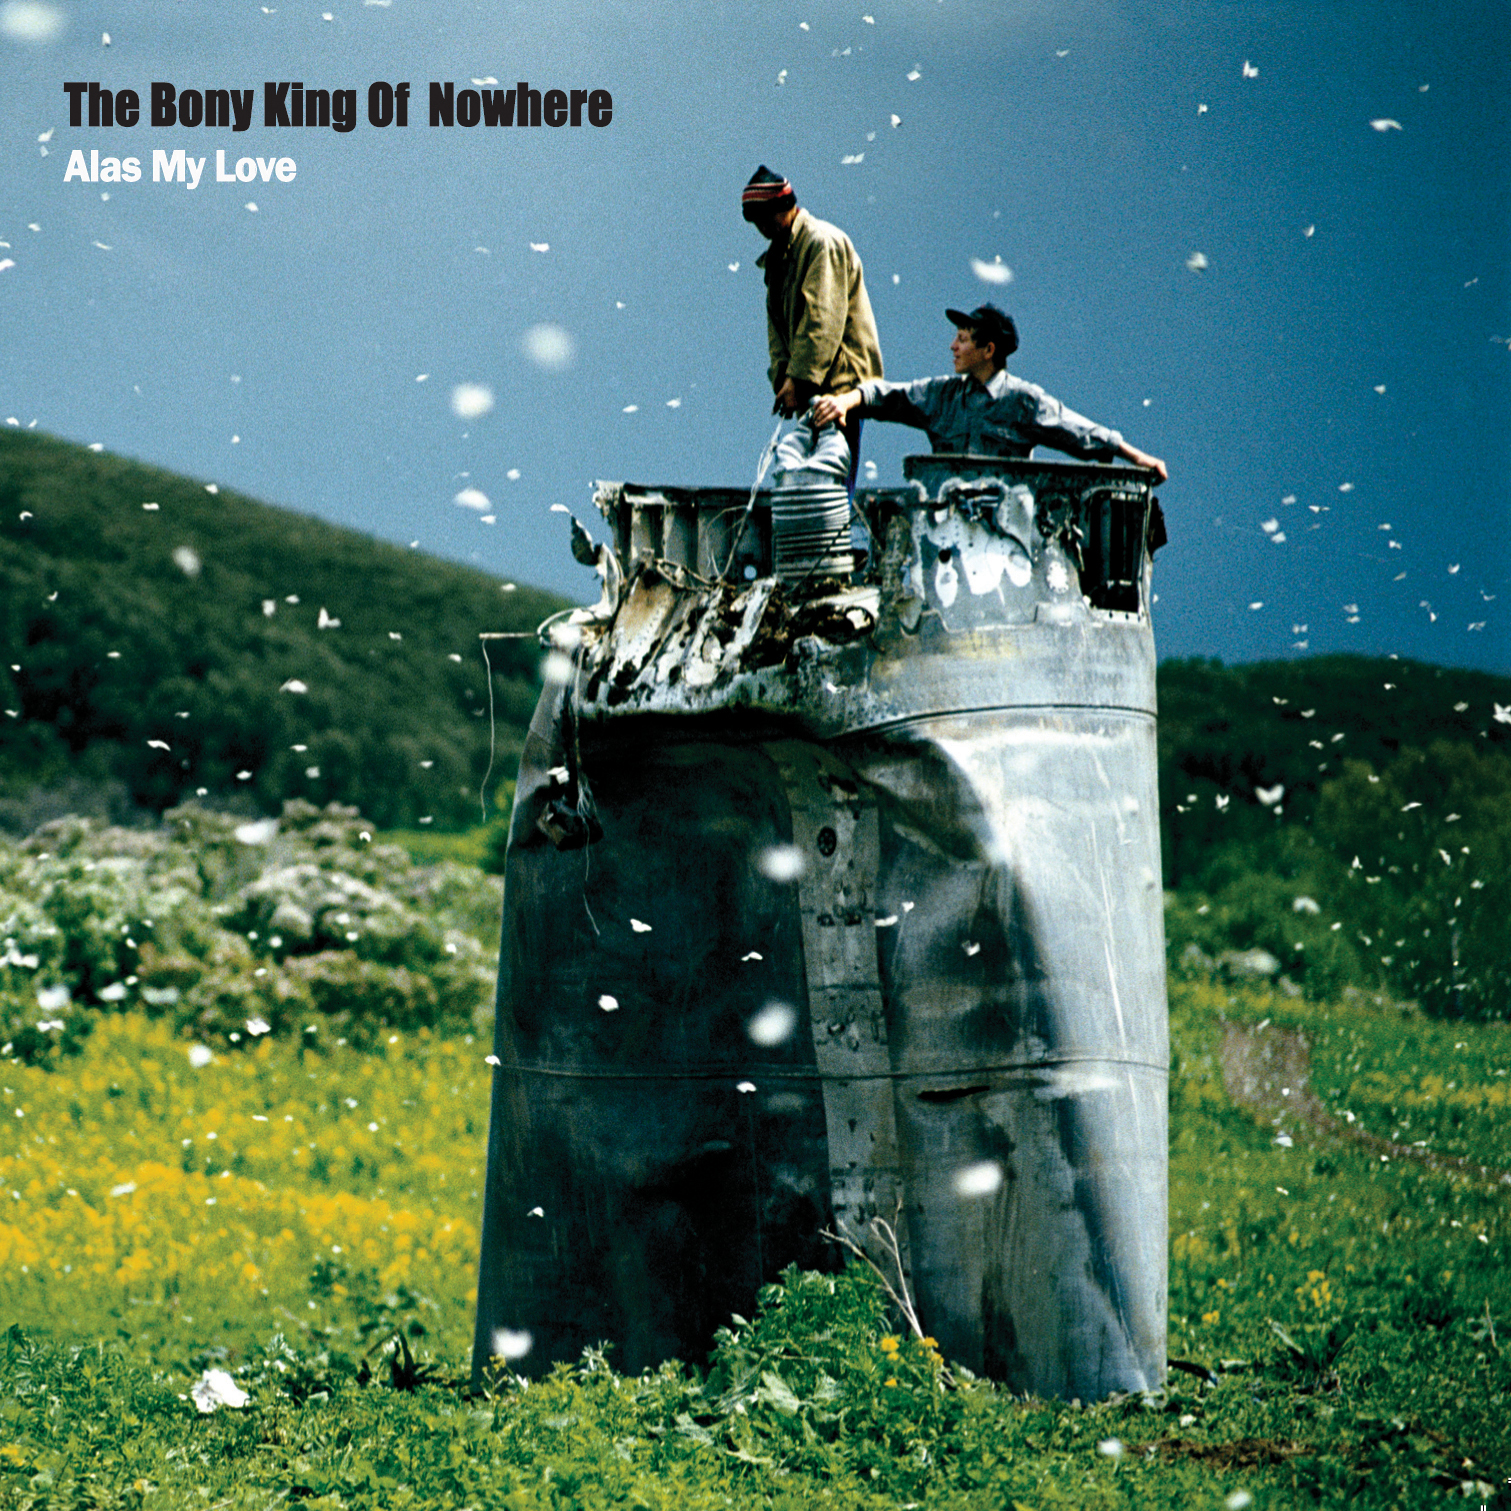 The Bony King of Nowhere - Alas My Love